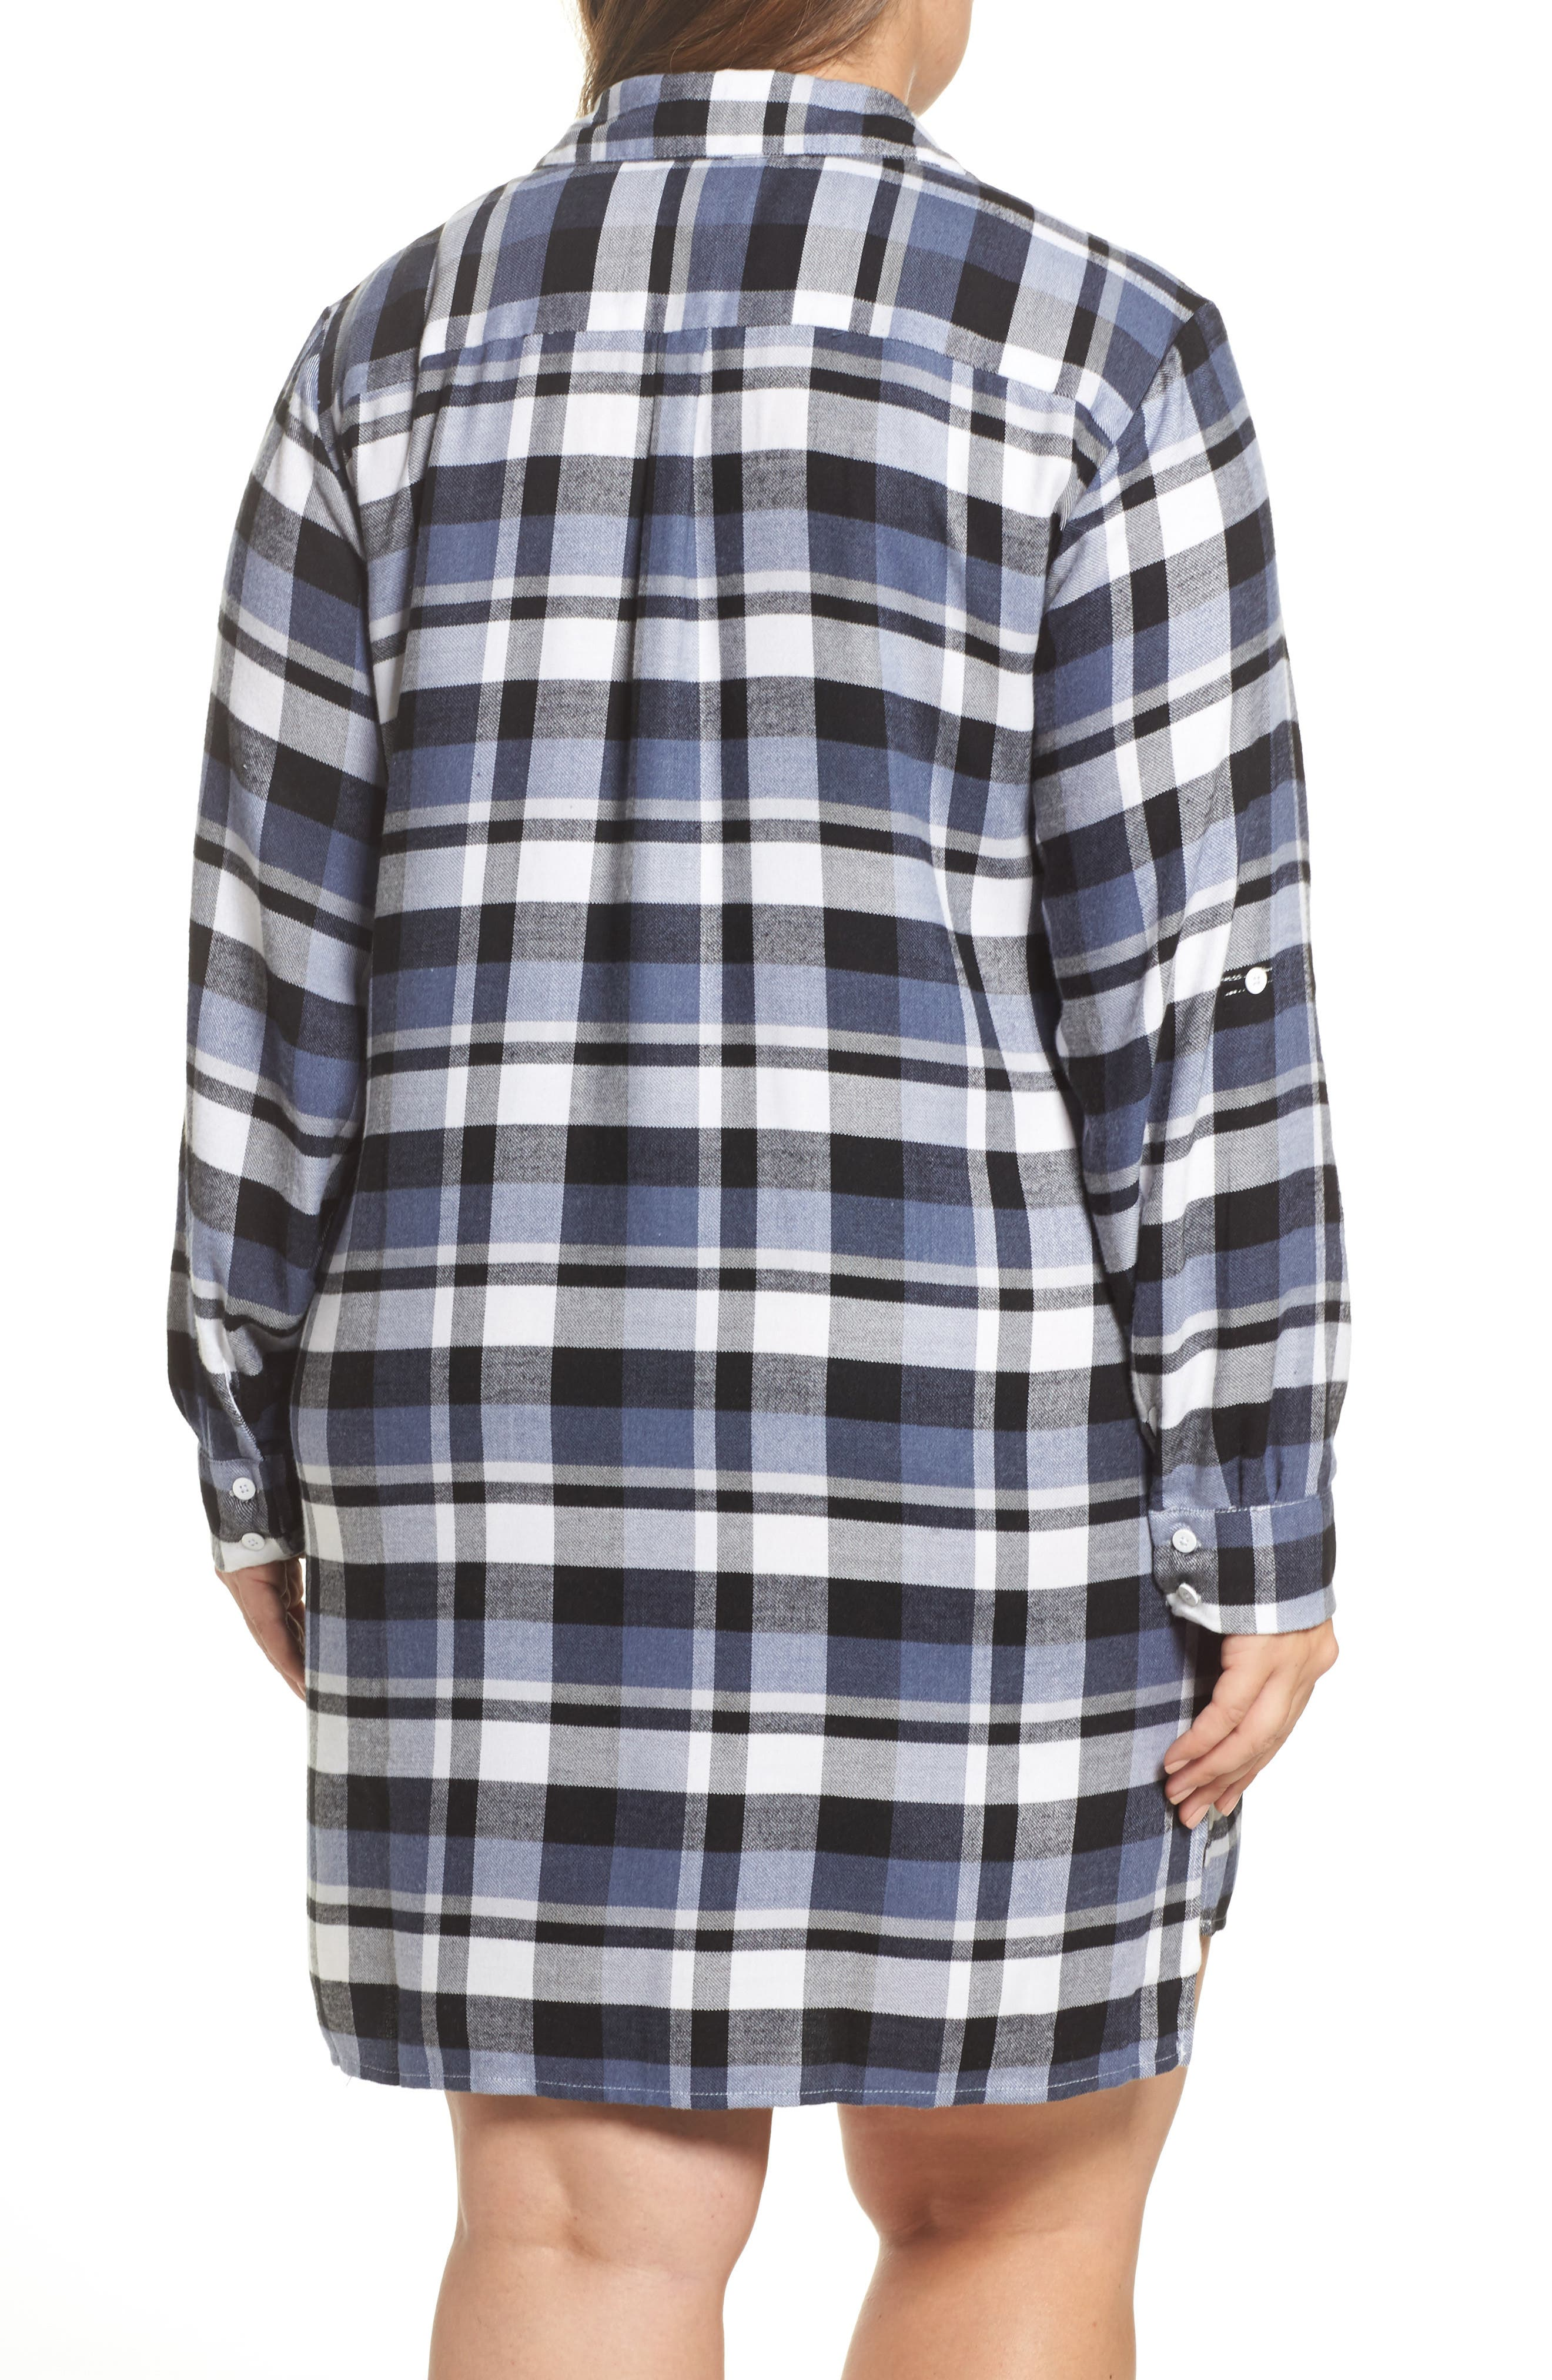 Plaid Sleep Shirt,                             Alternate thumbnail 2, color,                             400